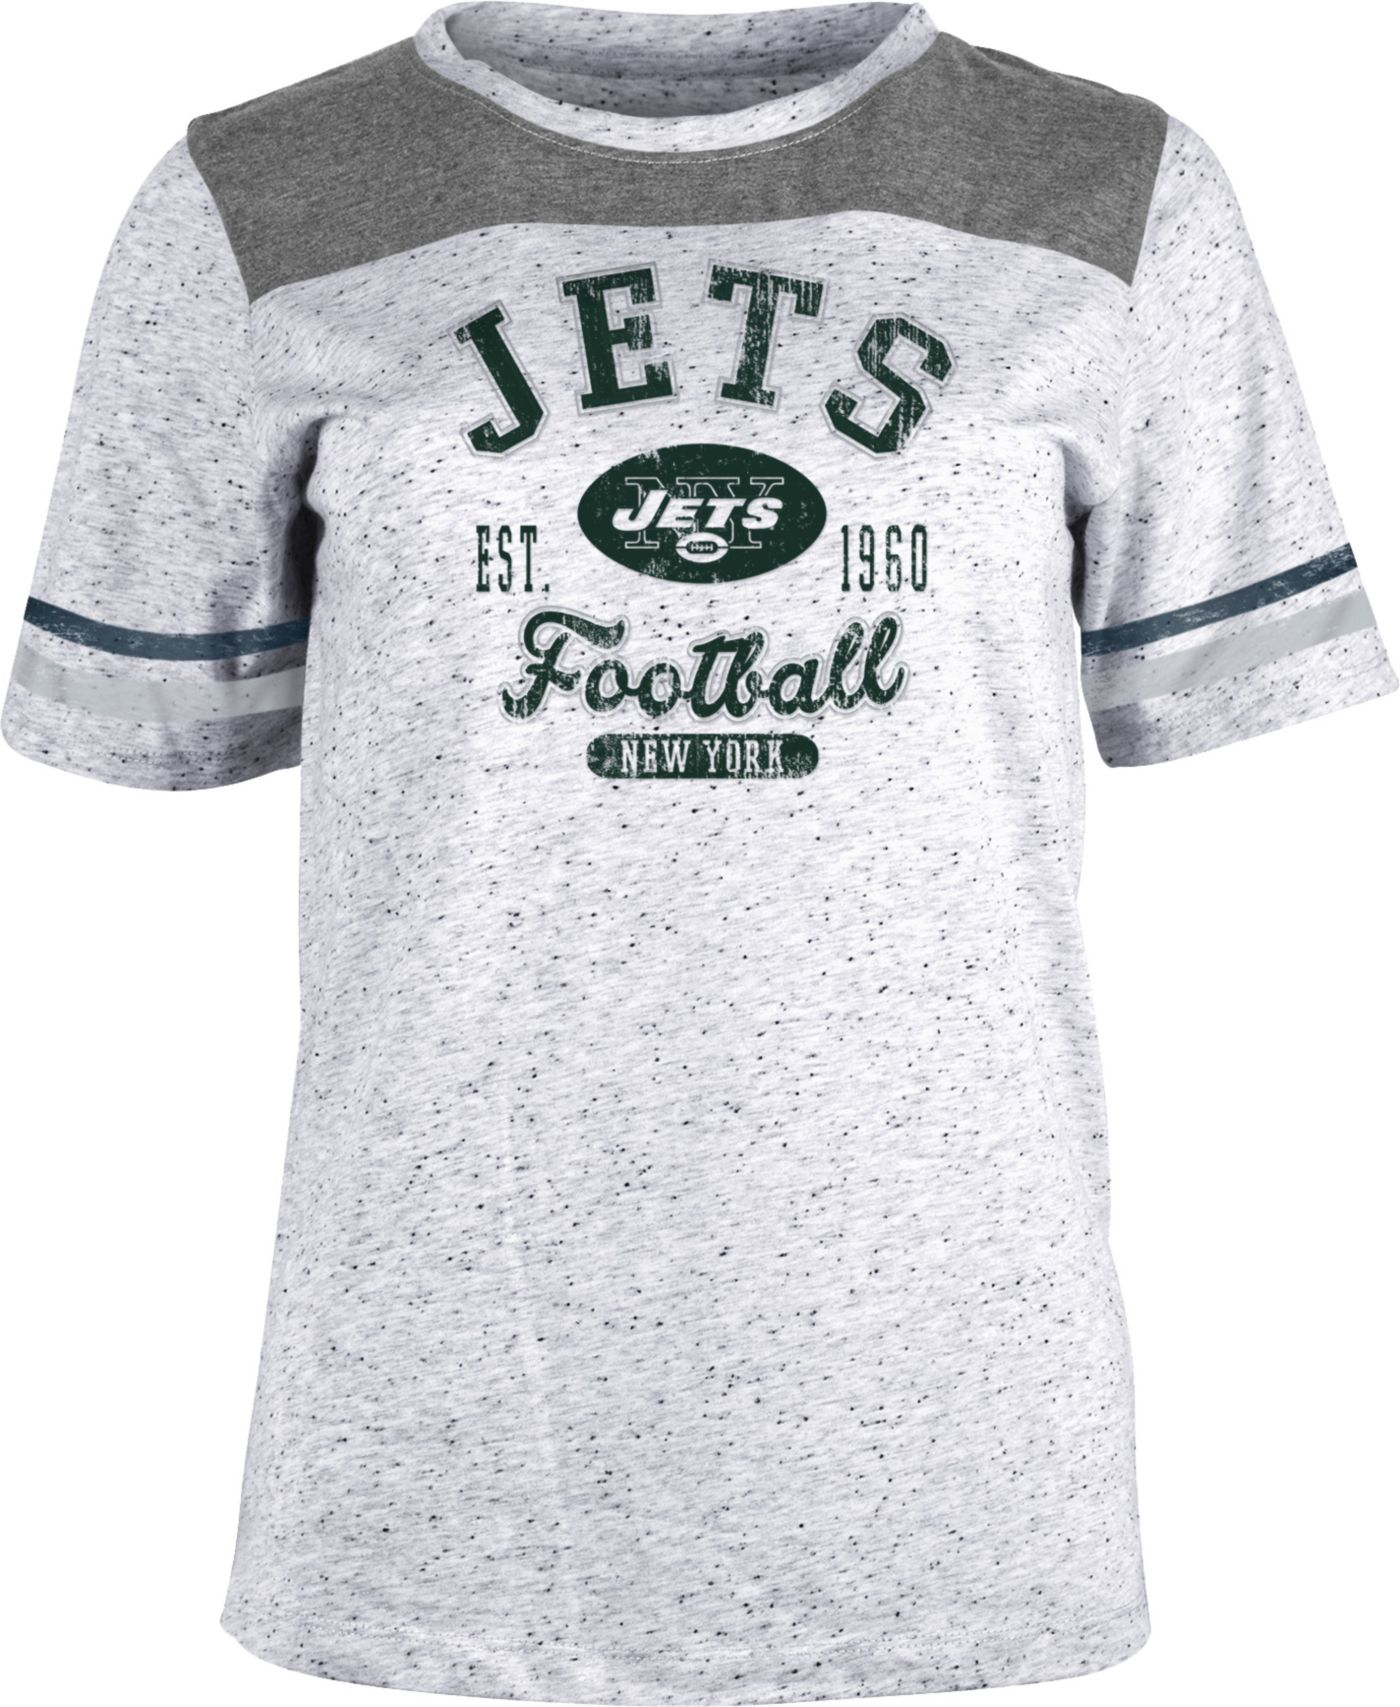 NFL Team Apparel Women's New York Jets Peppercorn T-Shirt